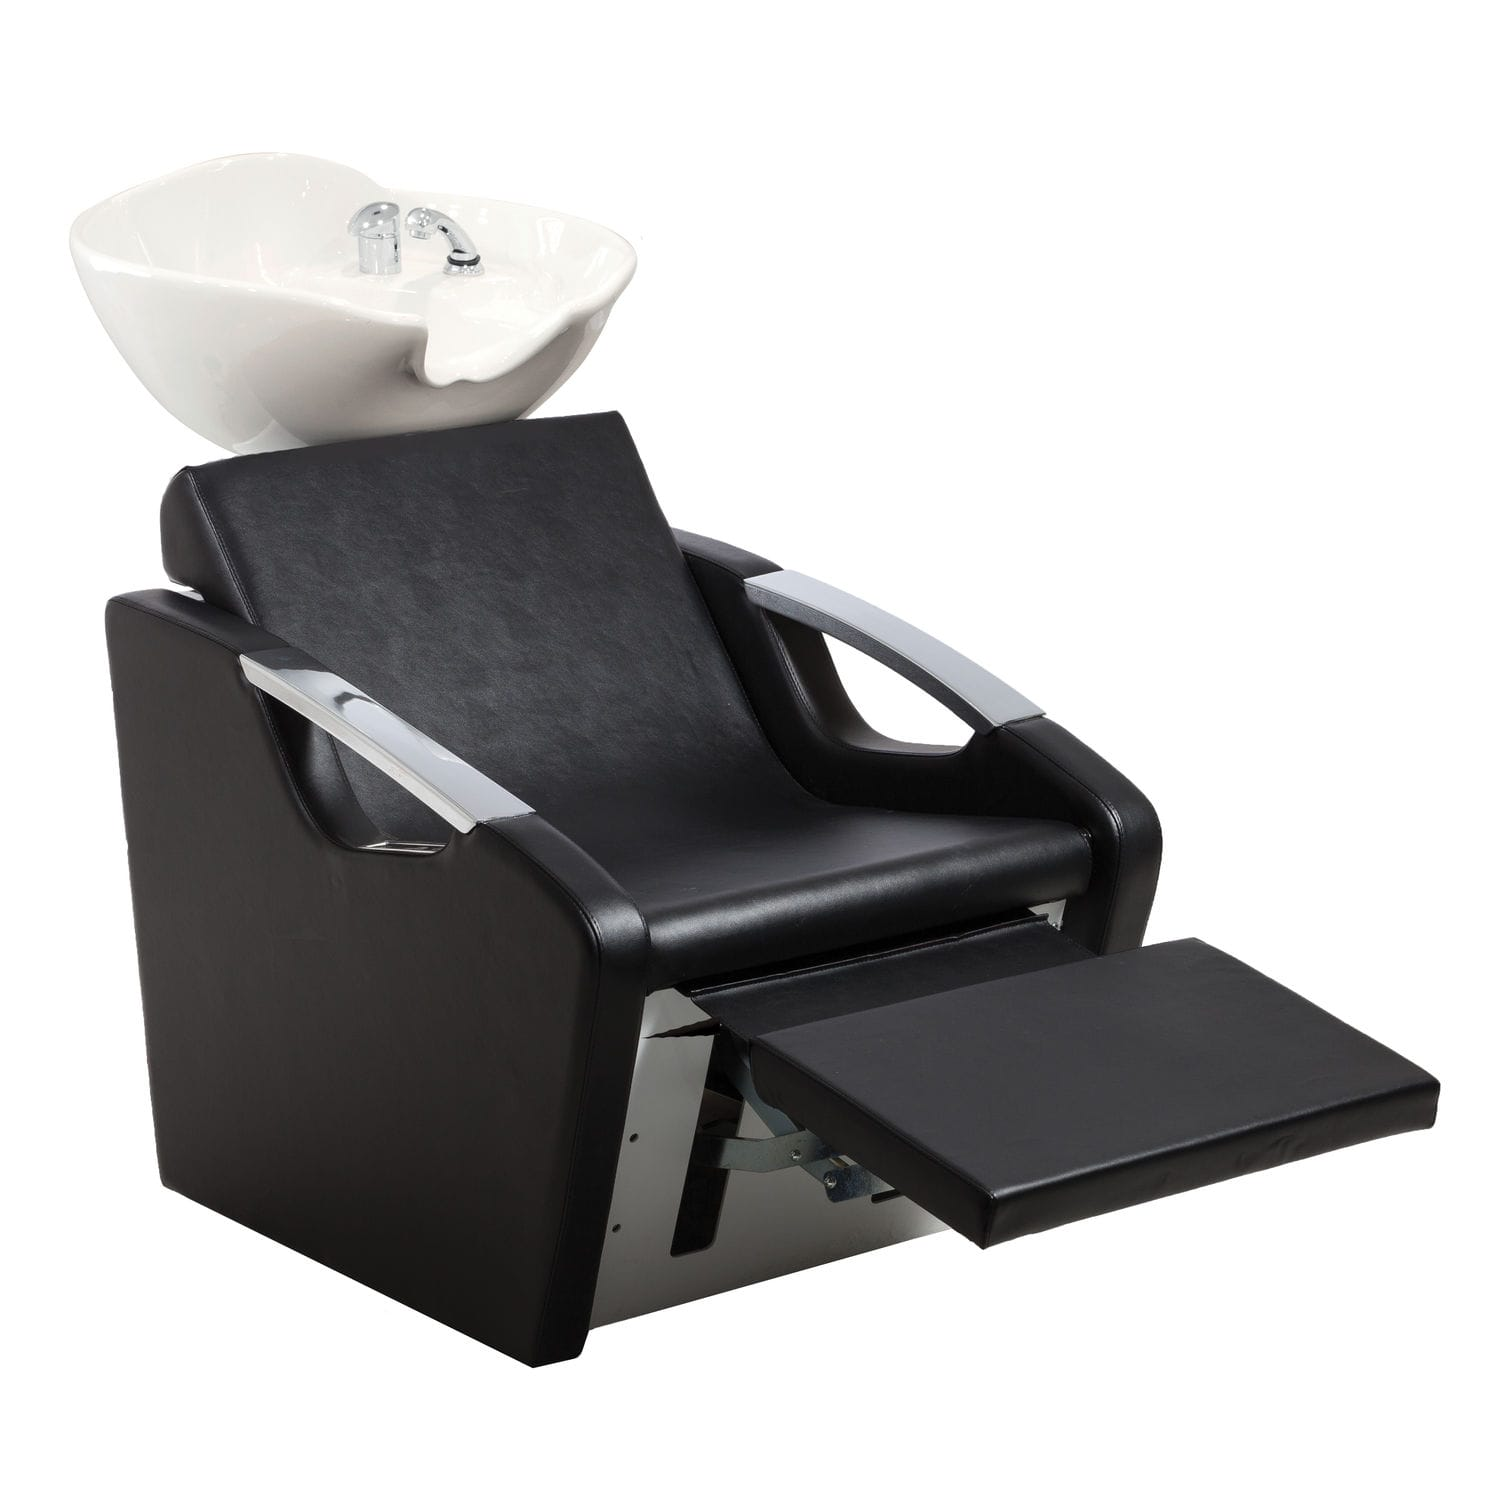 Shampoo chair SKY WASH FASHION FORT 4598 Maletti